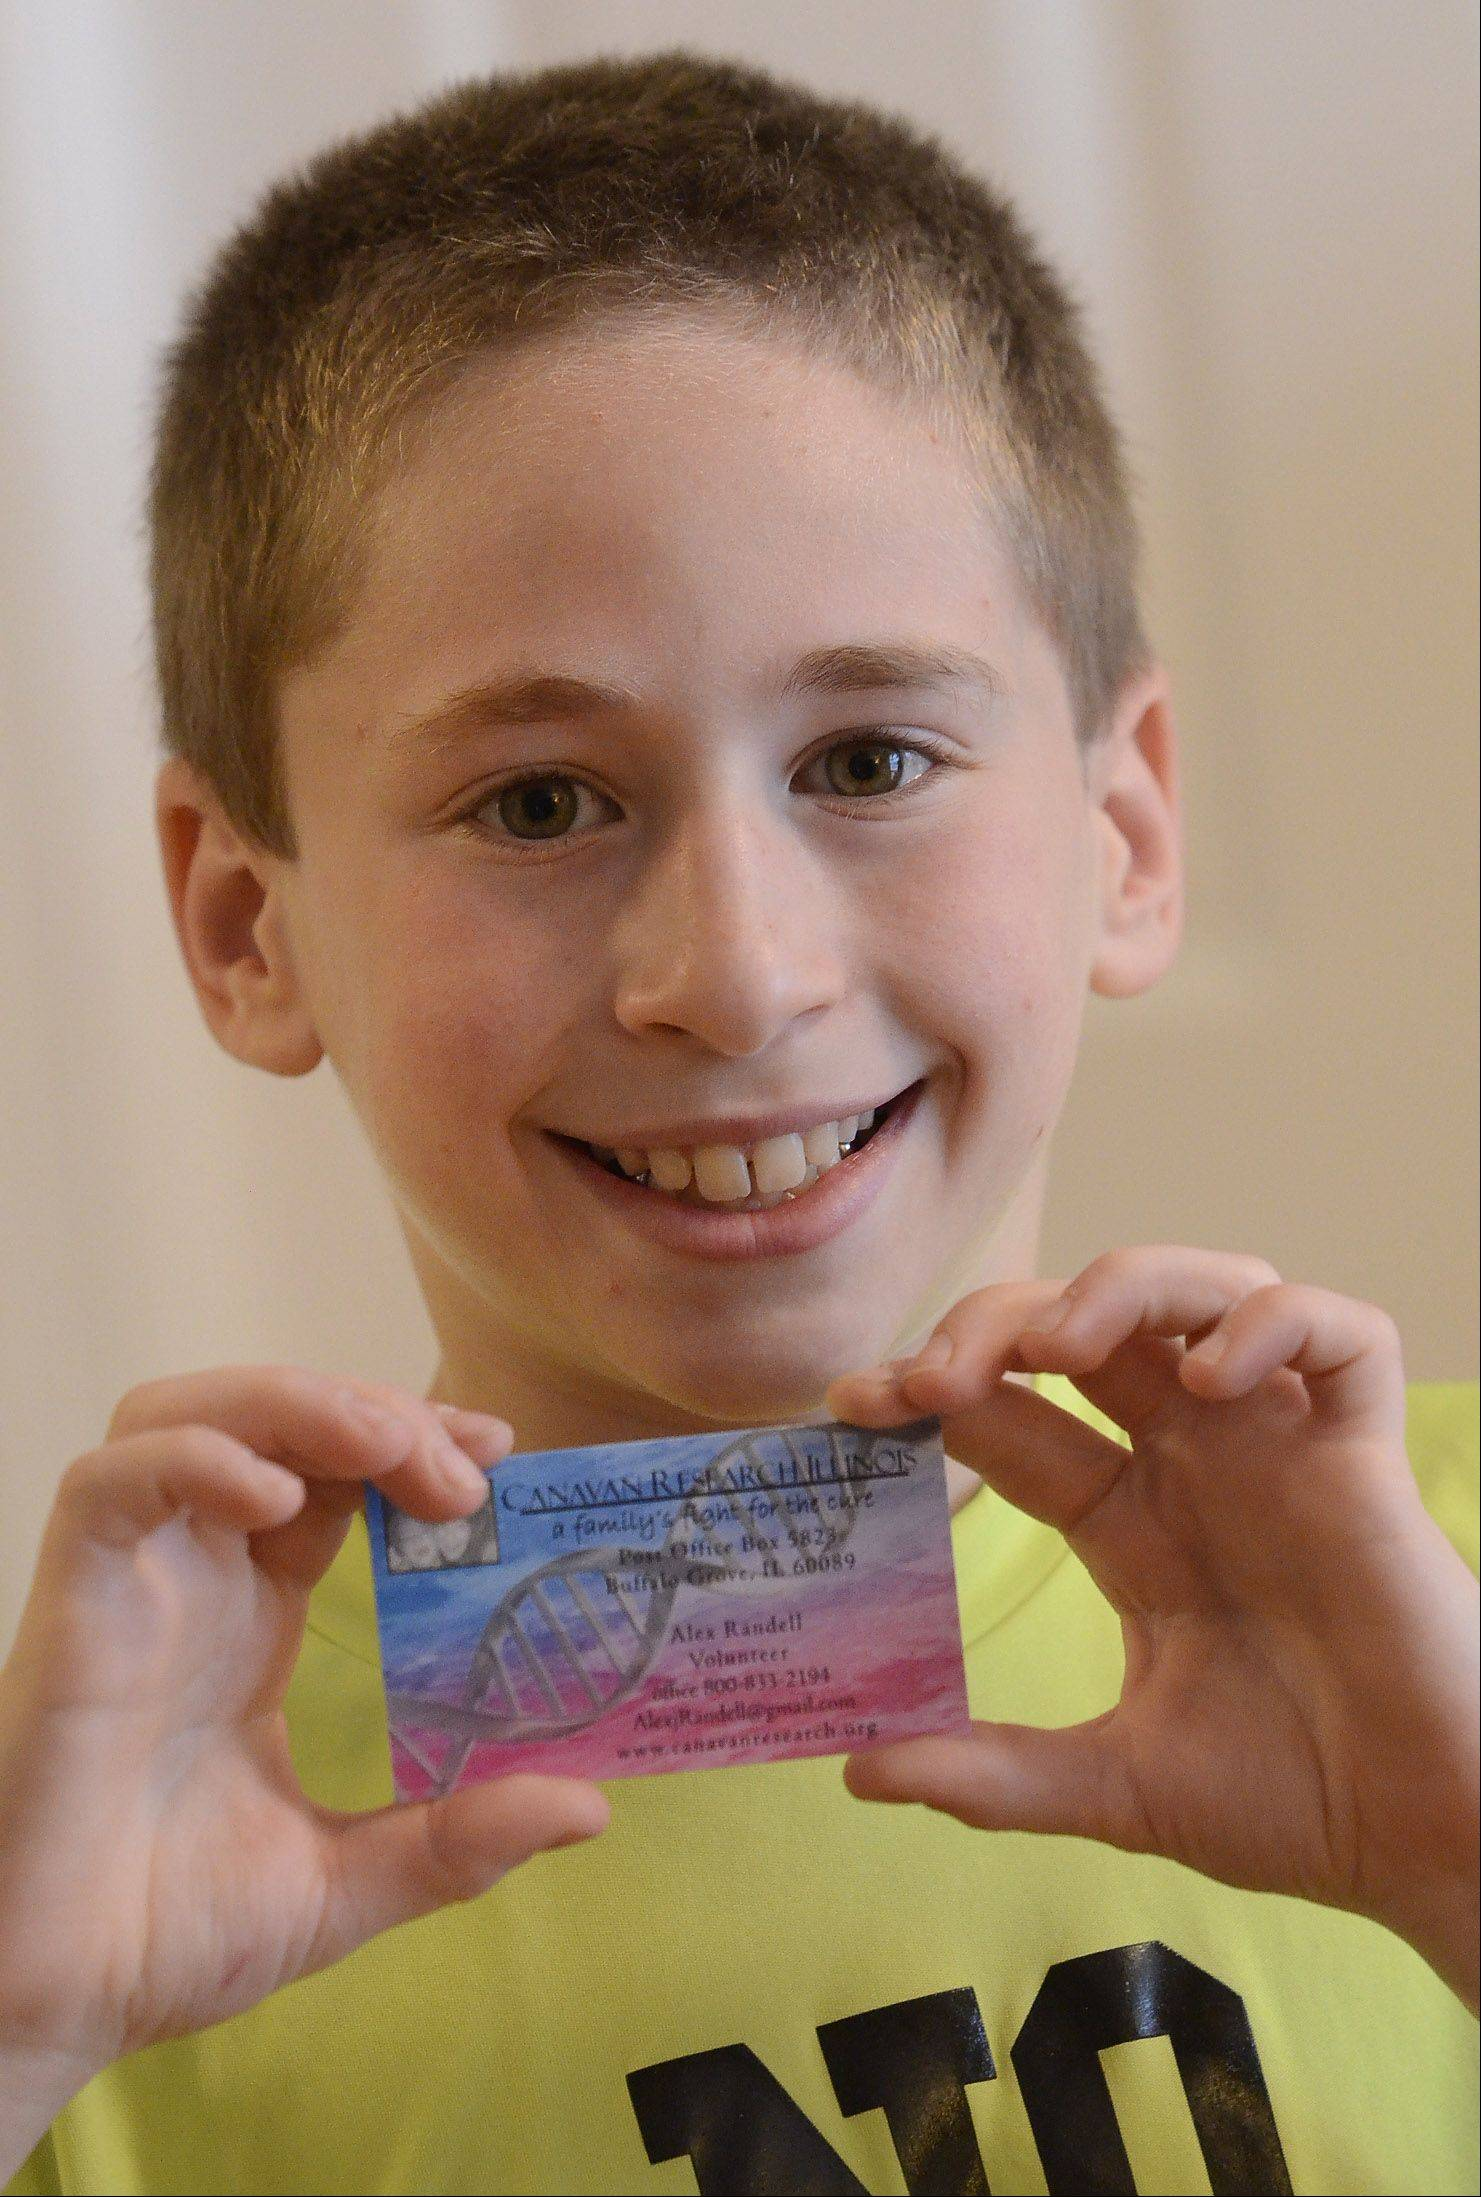 The youngest volunteer with Canavan Research Illinois, 10-year-old Alex Randell was stuffing envelopes as a preschooler and sports his own business cards.